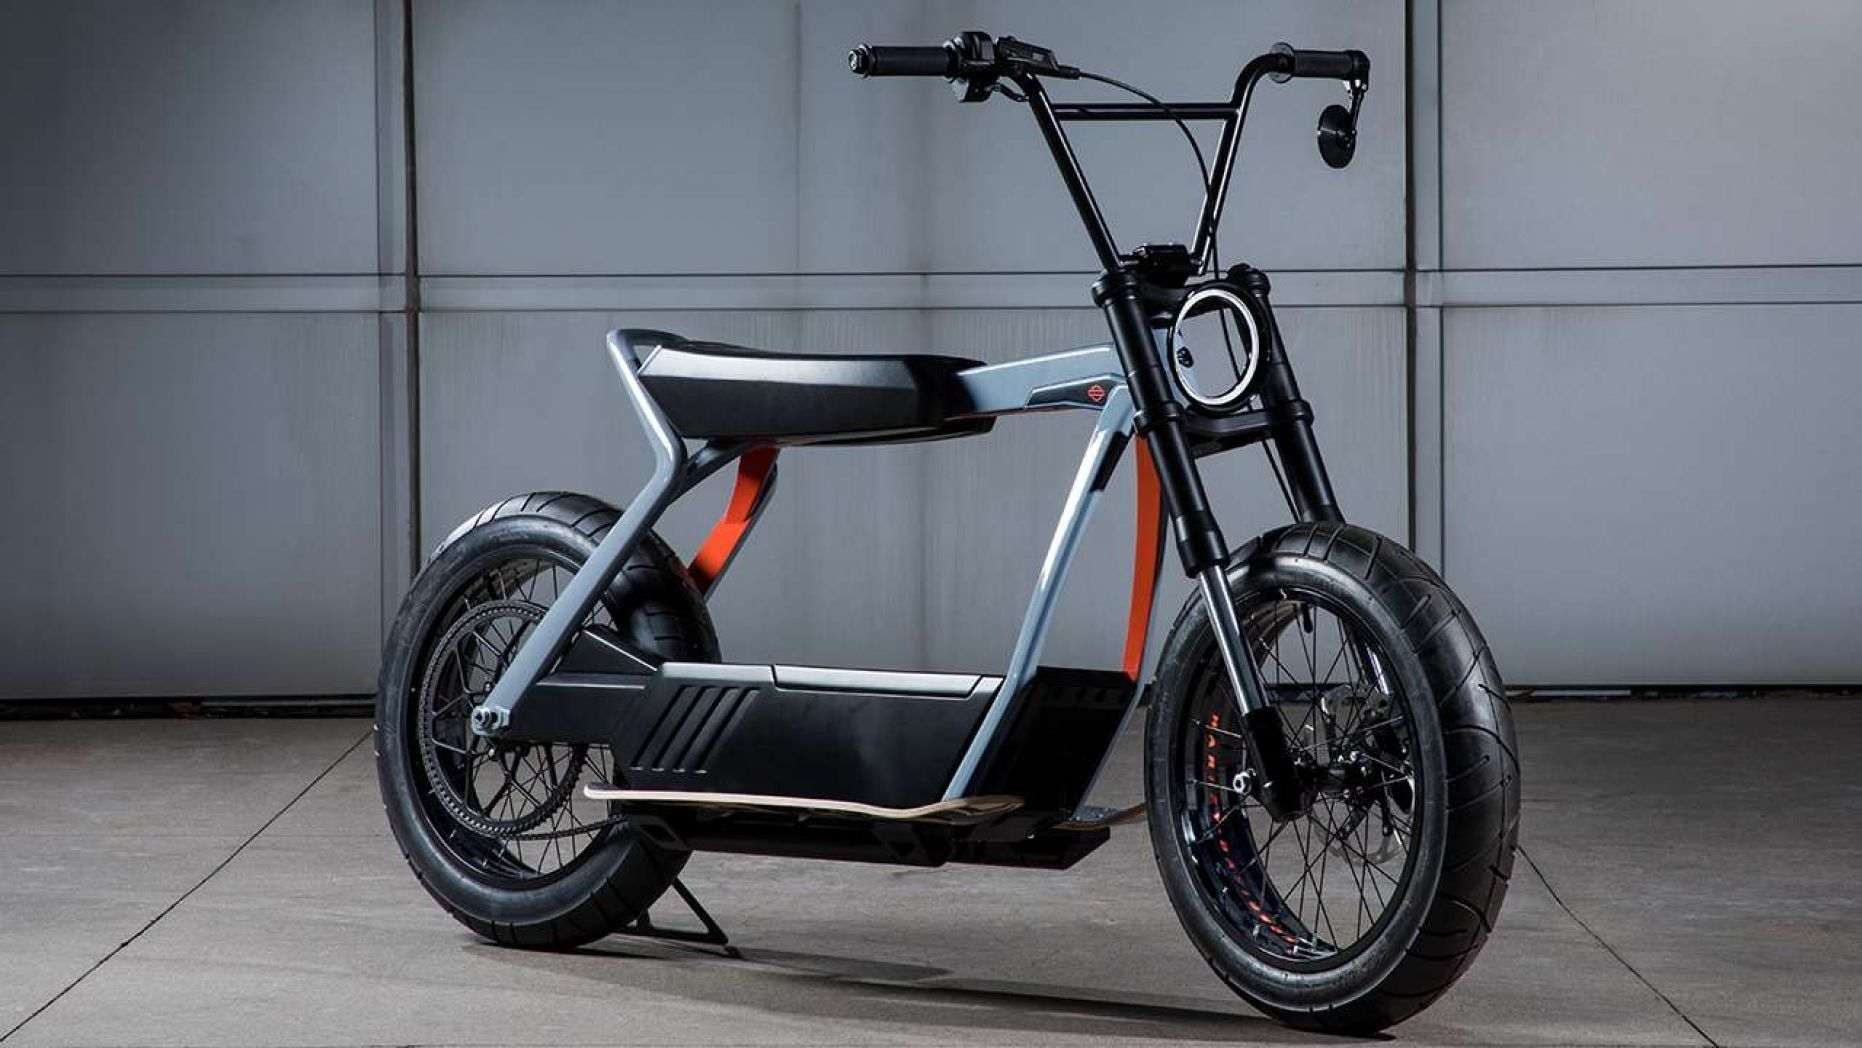 Electric Harley Davidson Livewire Priced At 29 799 With Images Electric Motorcycle Electric Scooter Electric Bike